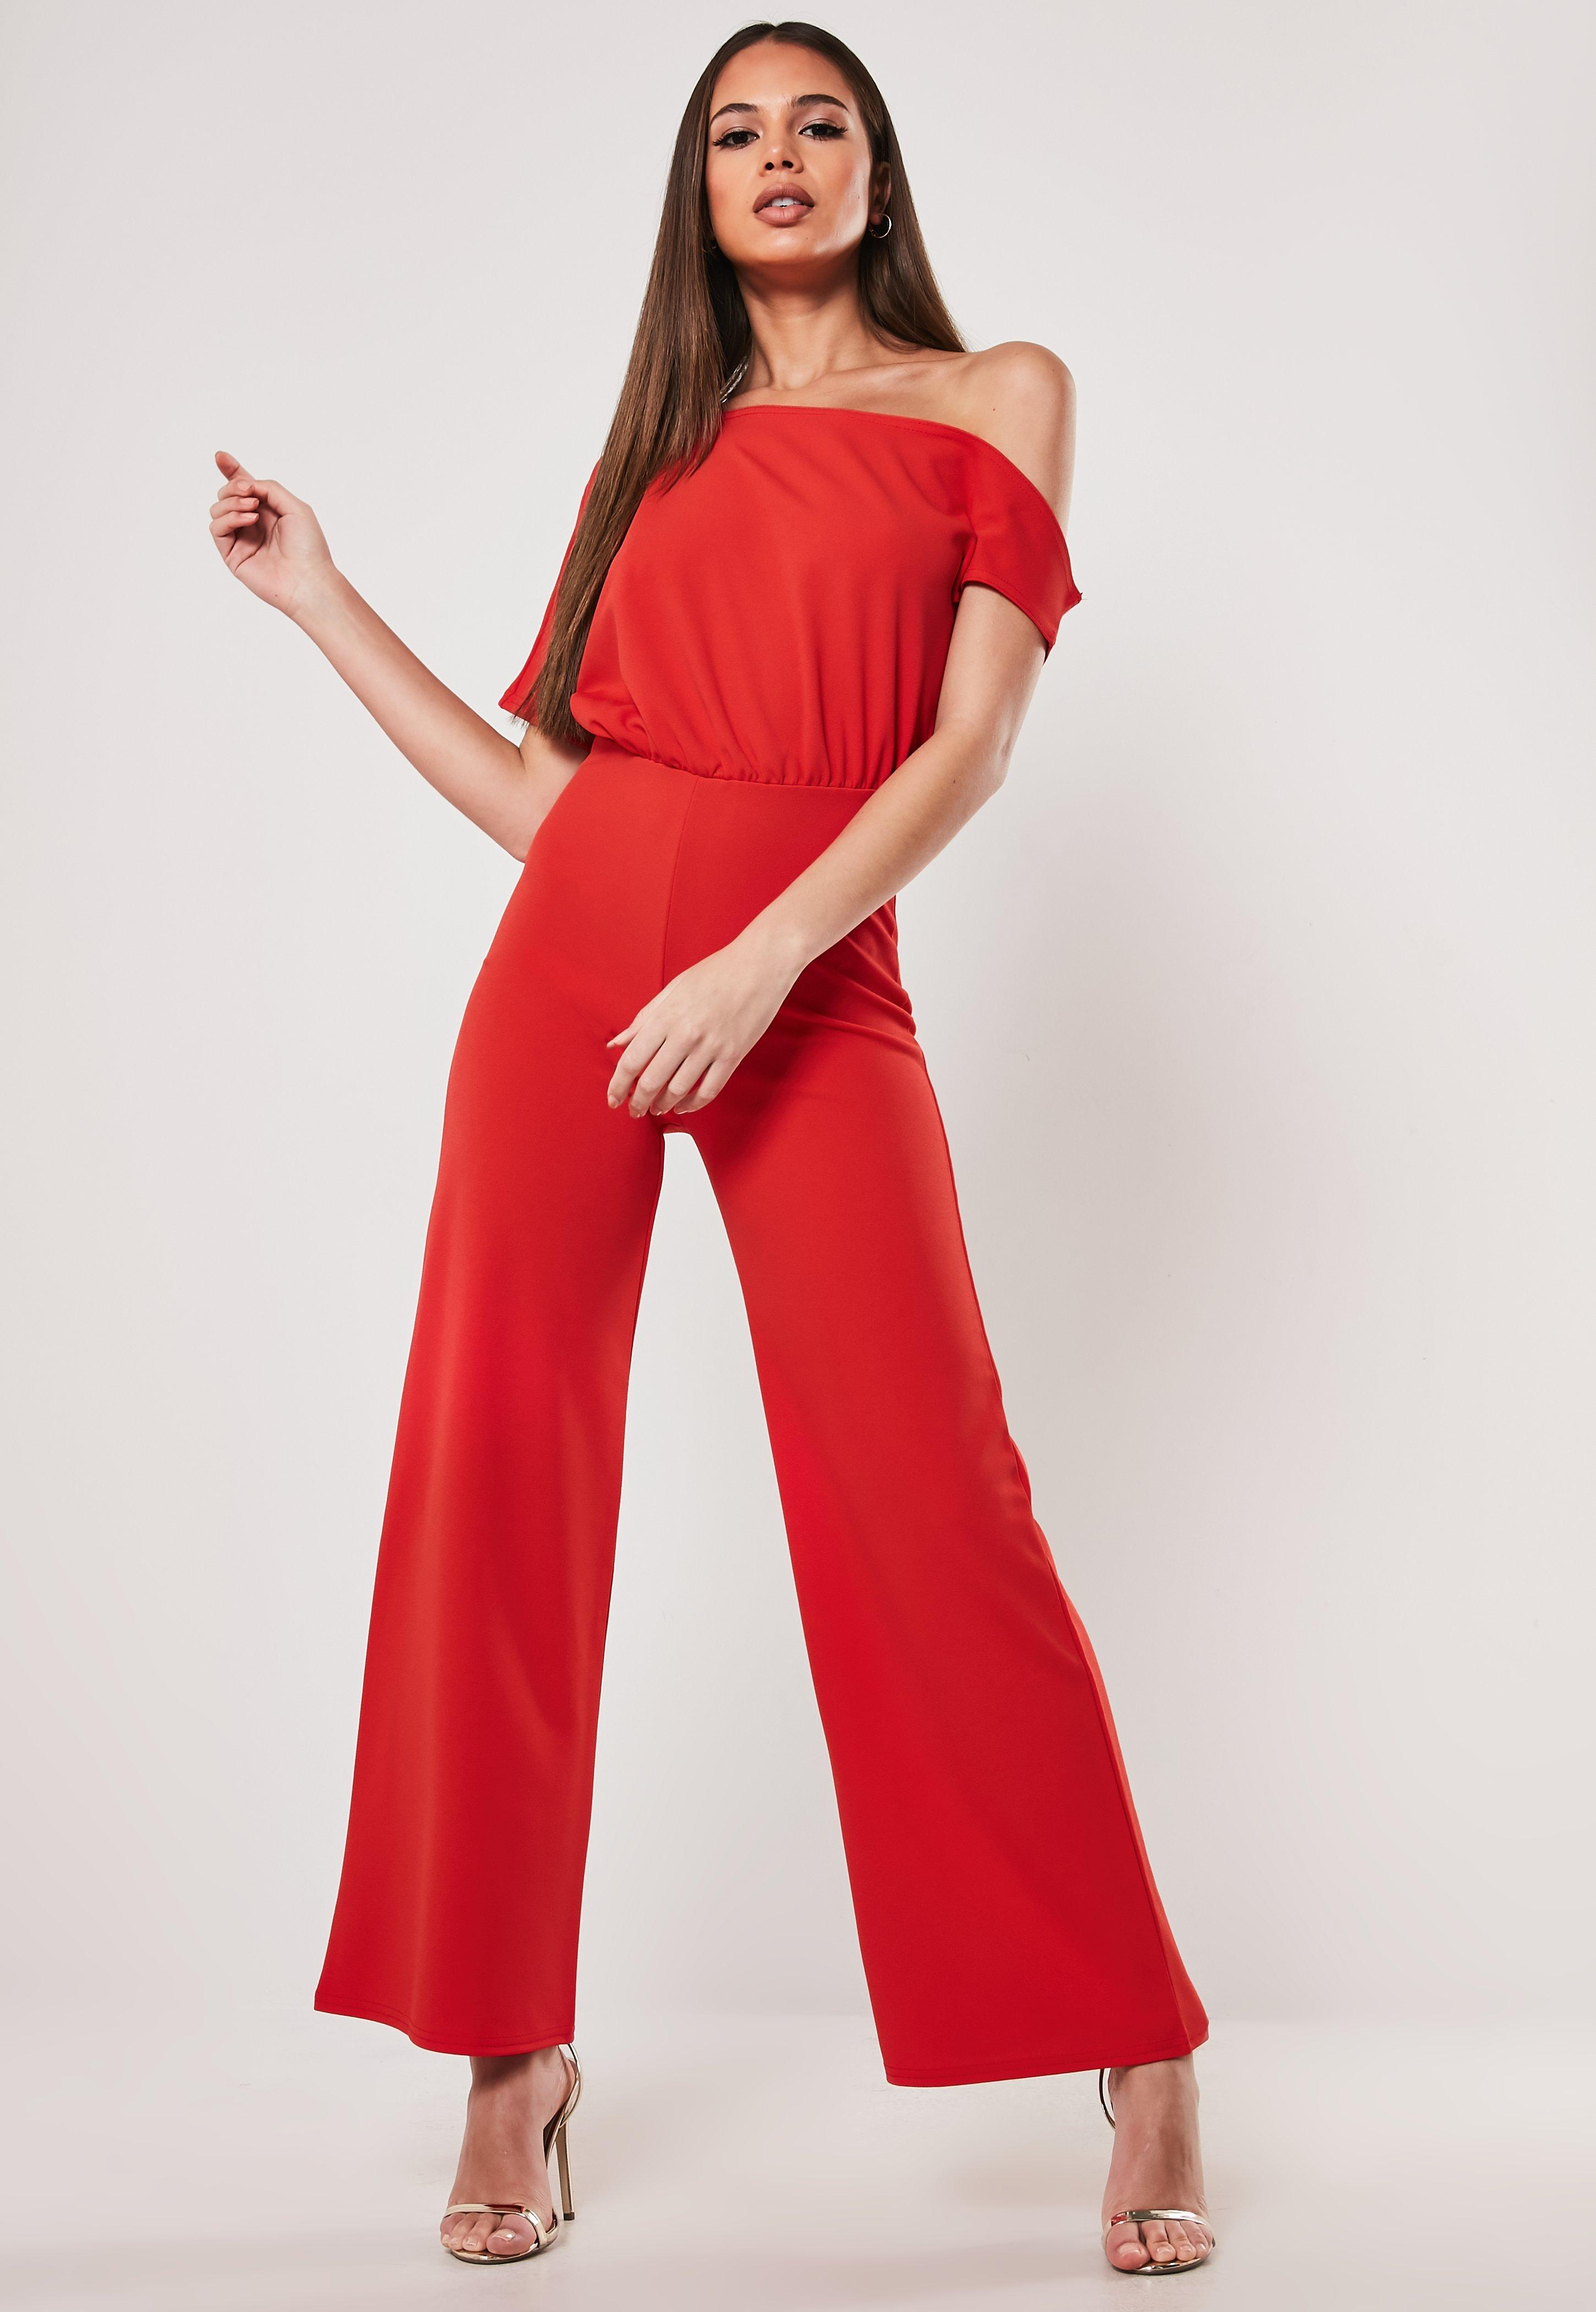 d8fbaa03dac9b Evening Jumpsuits | Formal, Going Out & Wedding Jumpsuits